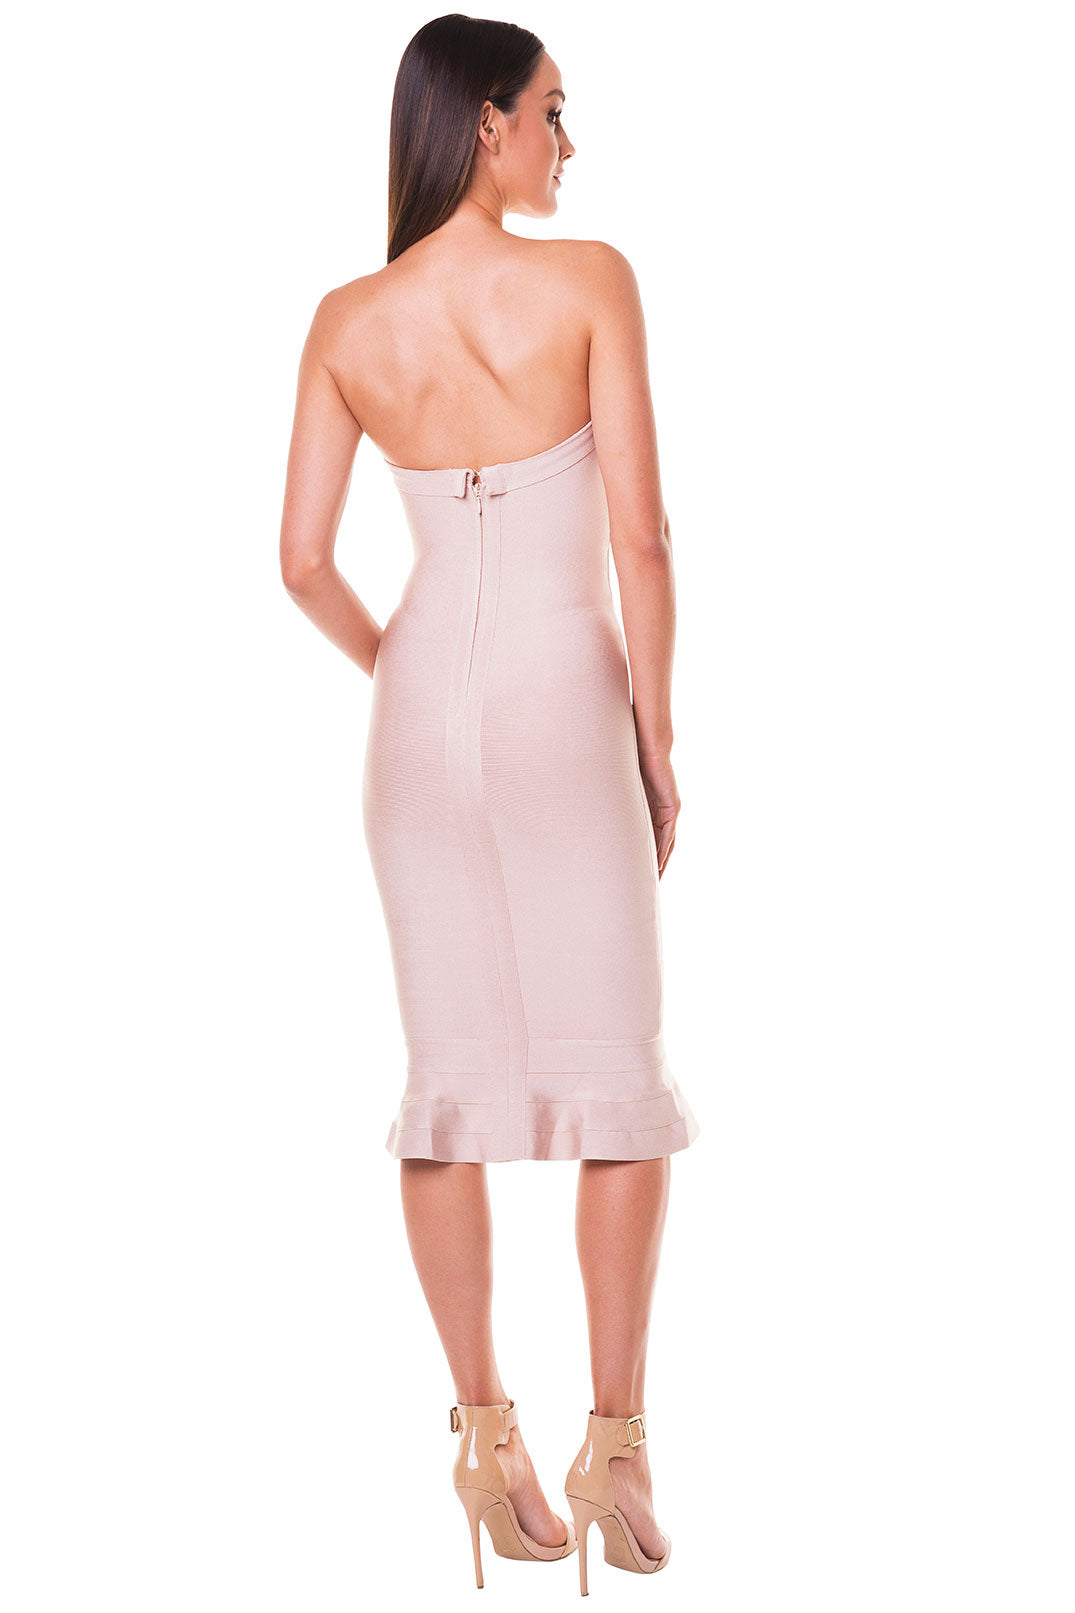 Layla Strapless Fluted Hem Bandage Dress - Nude [SAMPLE SALE]